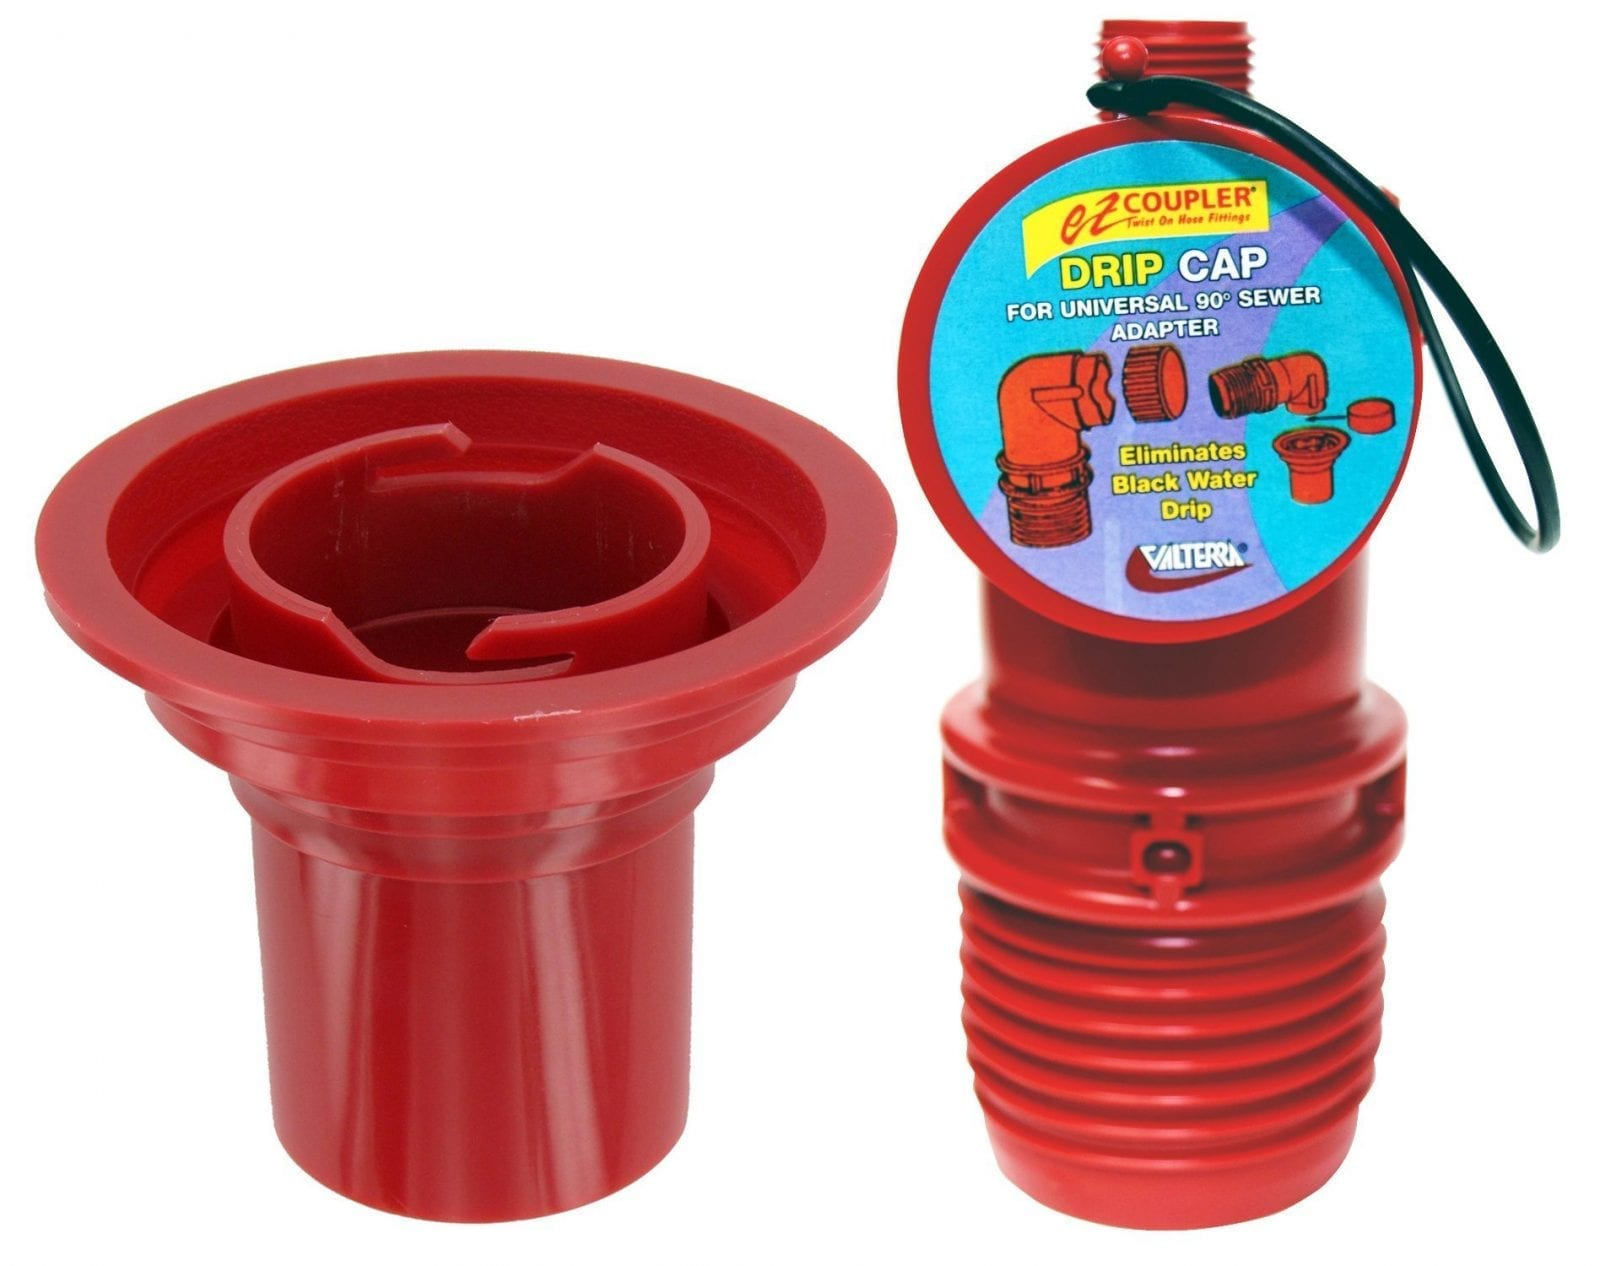 Ez Coupler Universal Sewer Adapter Red Carded Valterra